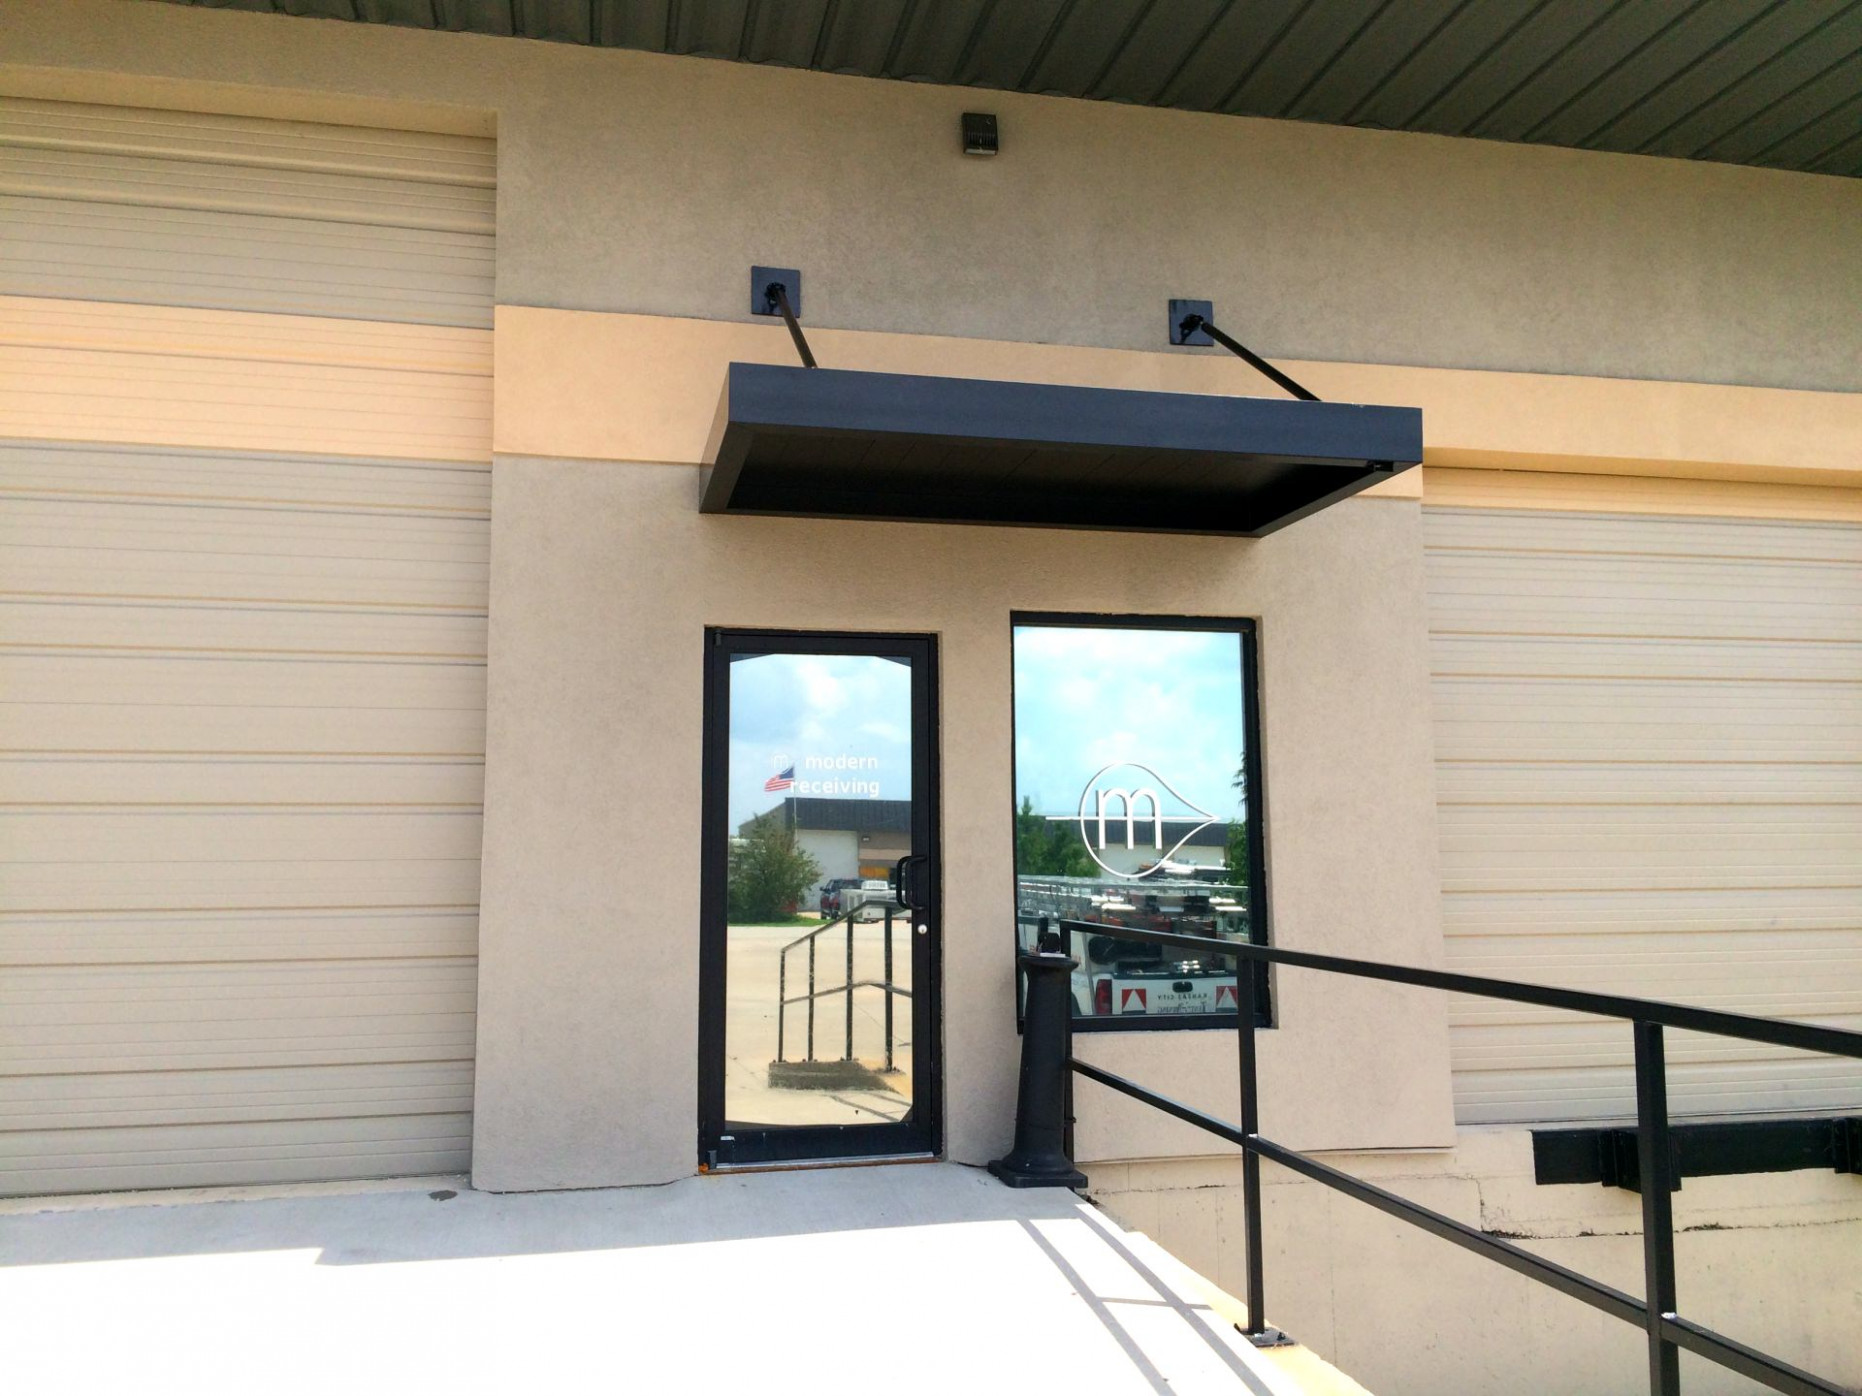 Commercial Awnings | Kansas City Tent & Awning | Metal ...